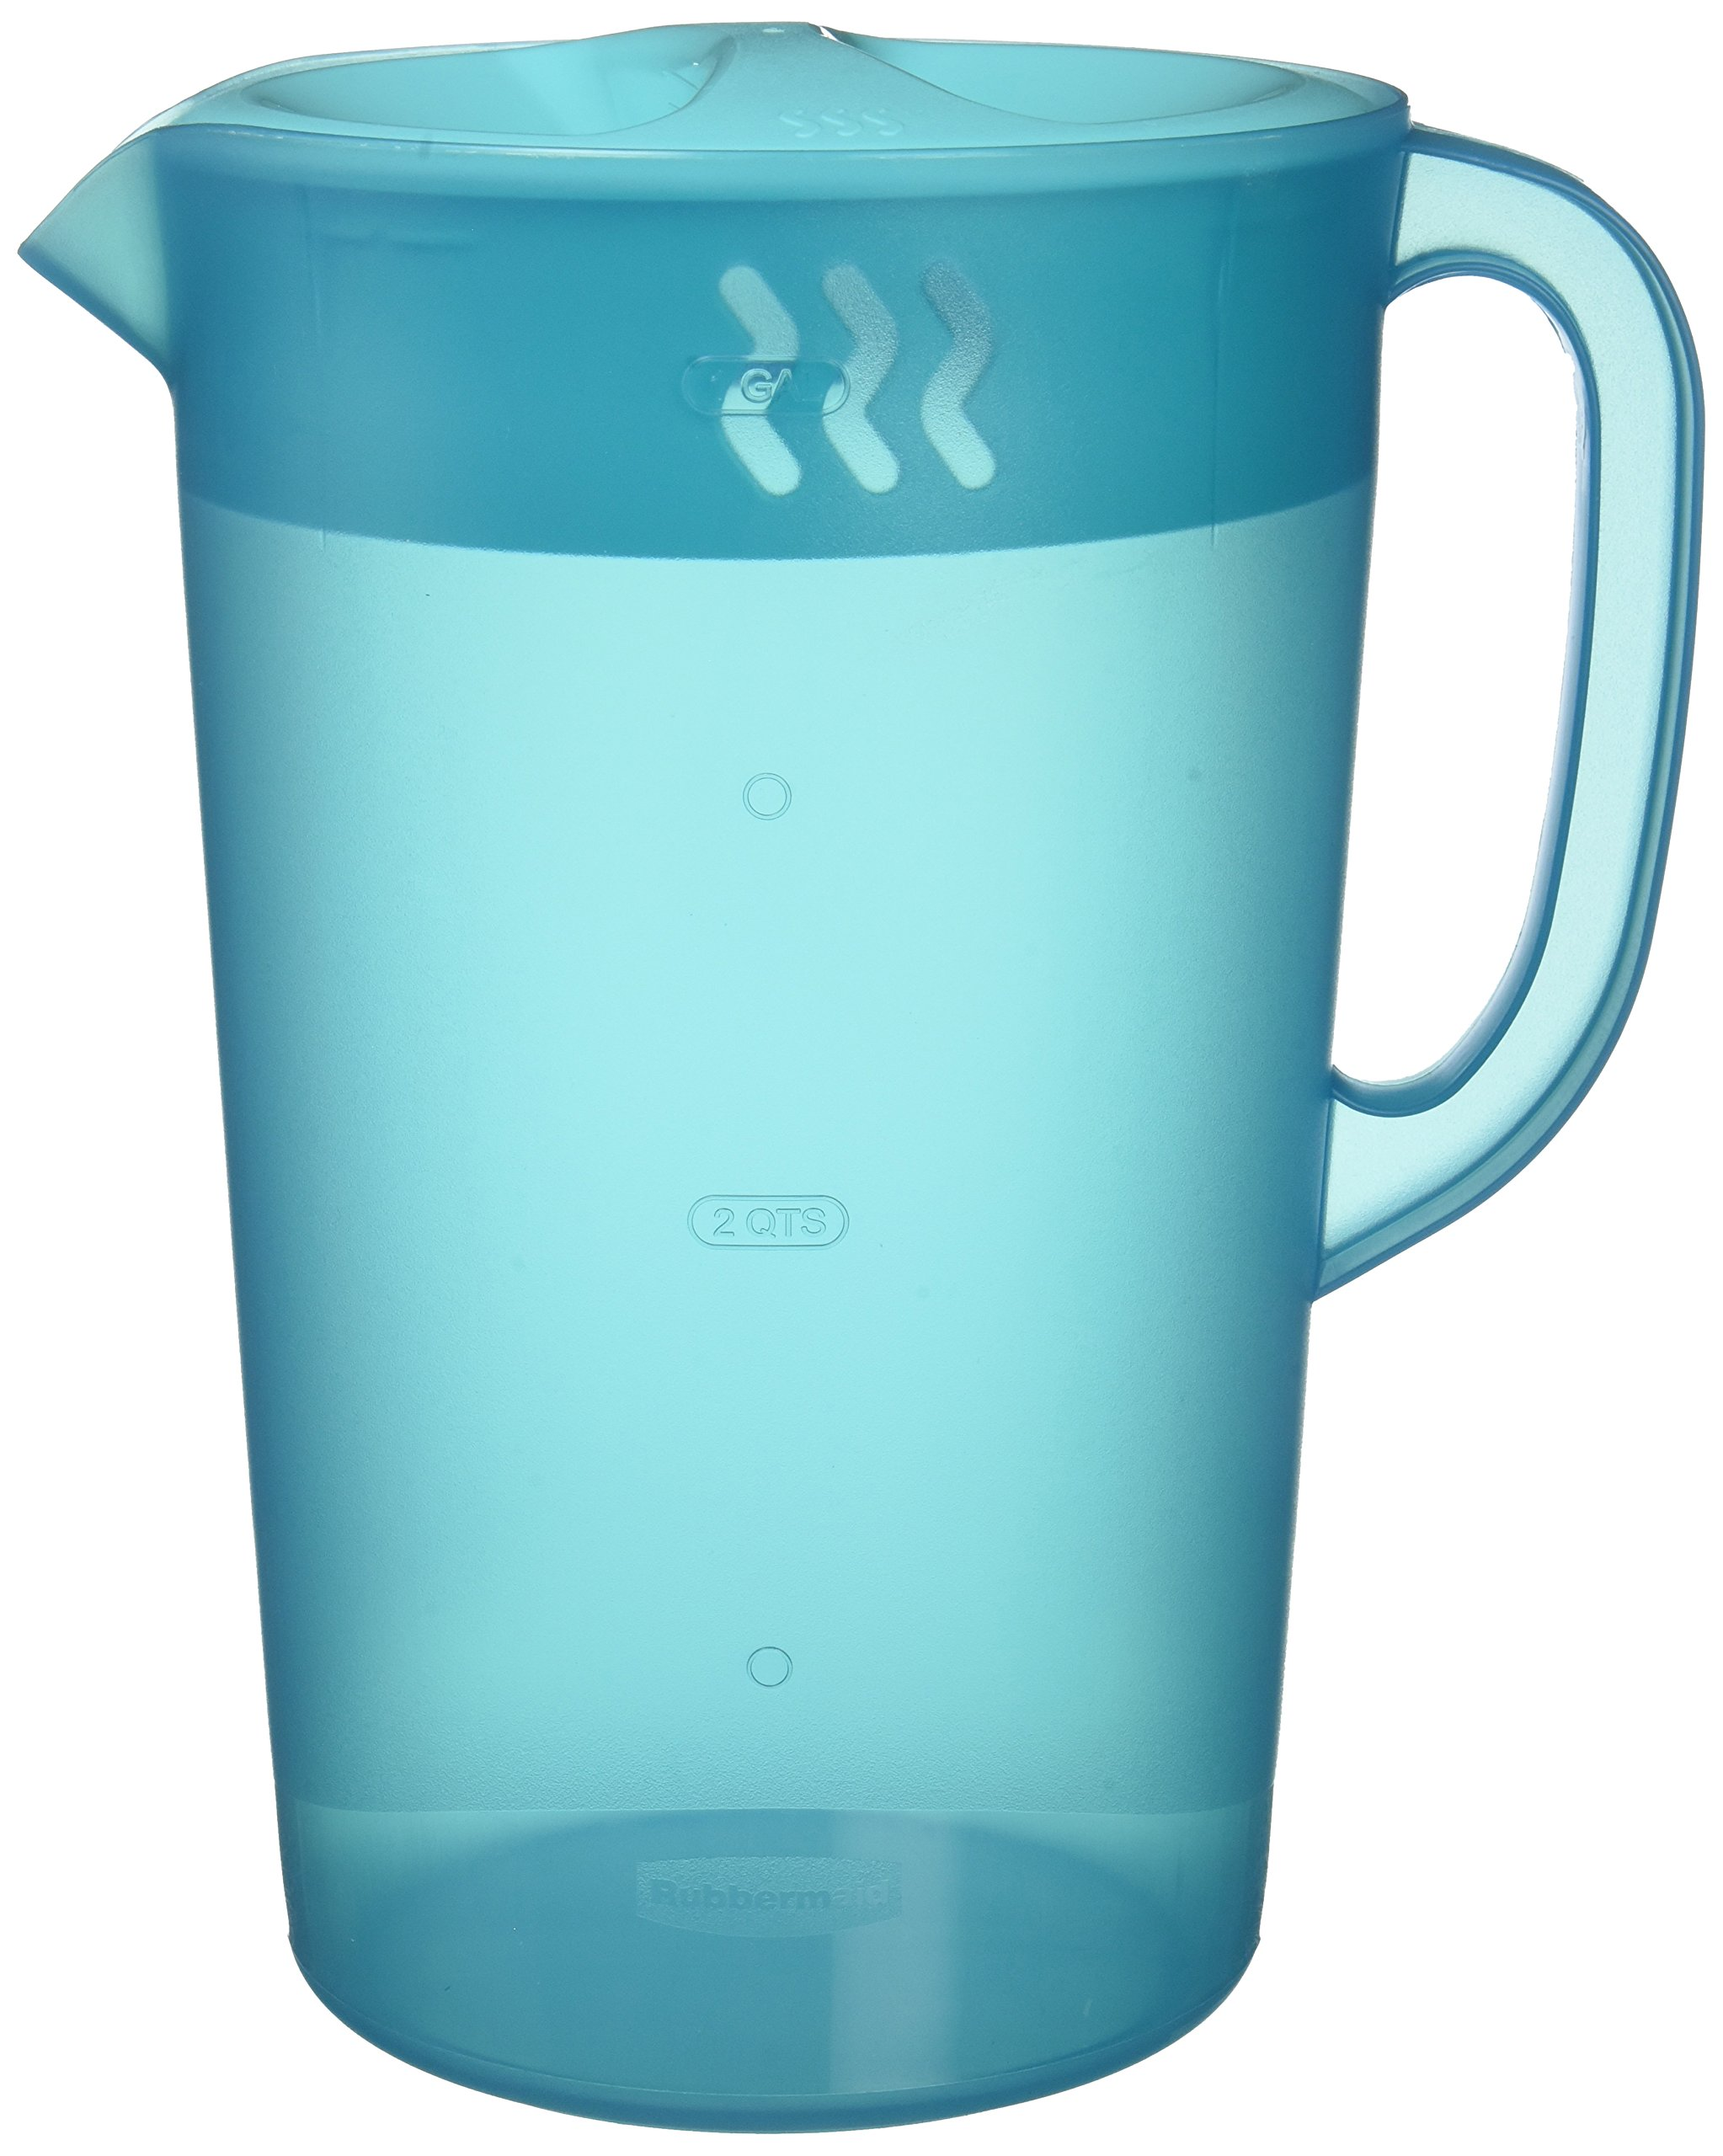 Rubbermaid Gallon Pitcher - Blue